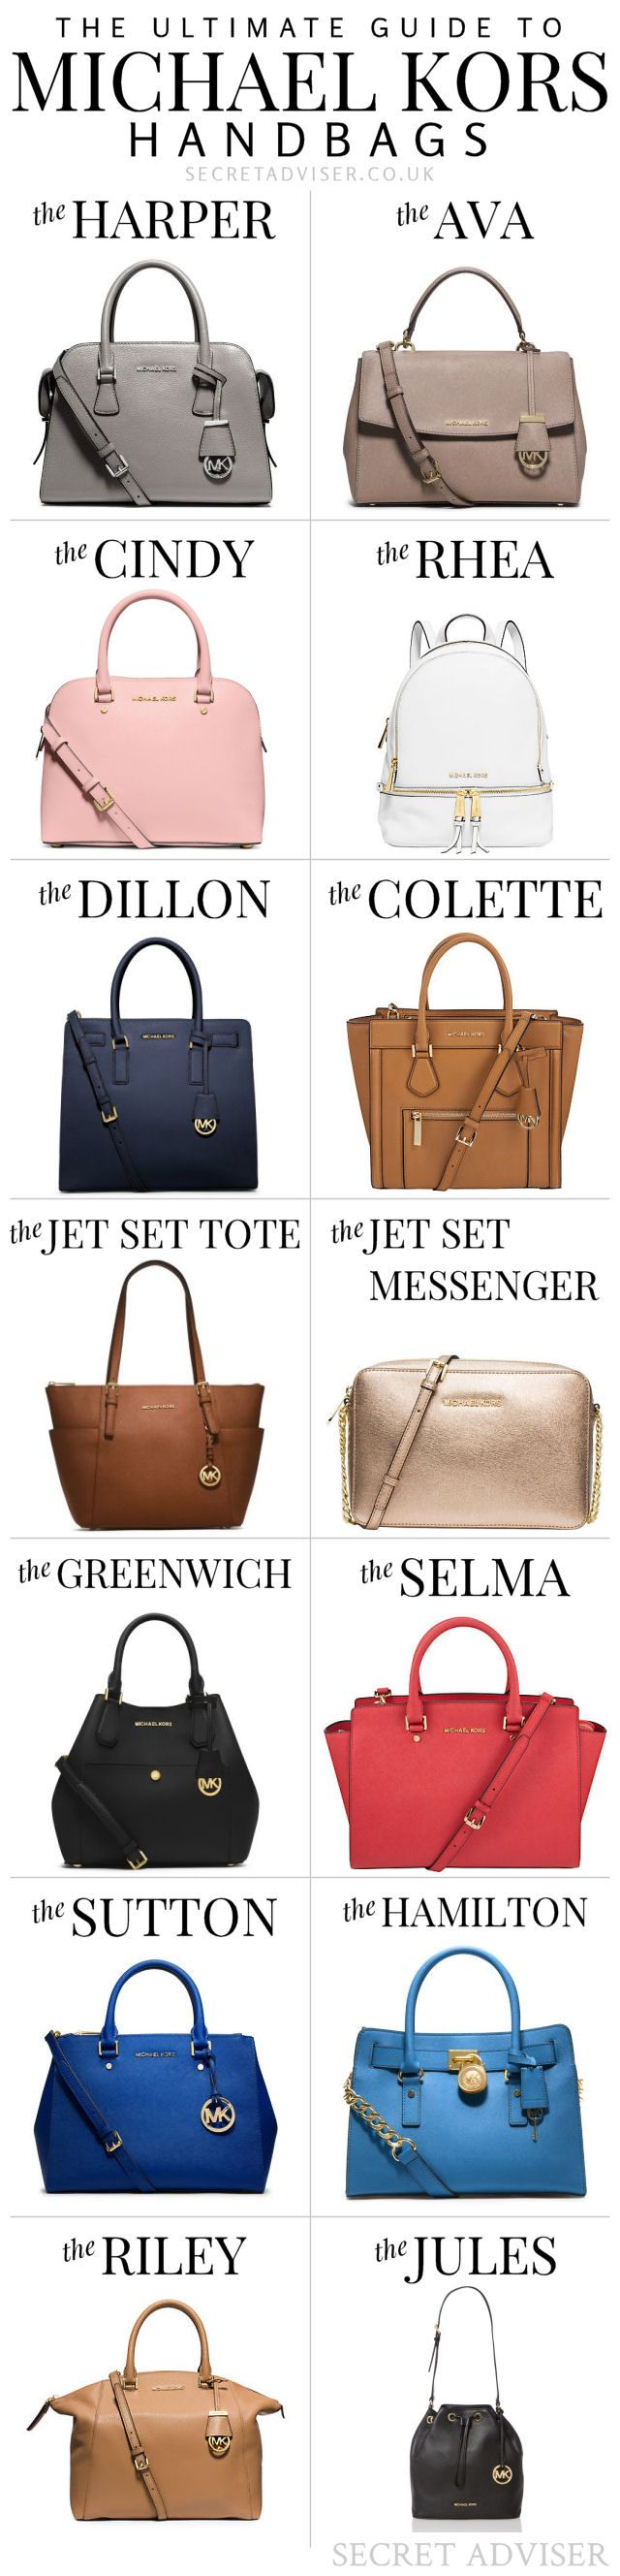 The Ultimate Guide to Michael Kors Handbags - Really useful for choosing your next one, or deciding which one to buy for someone else! Pin it for later.